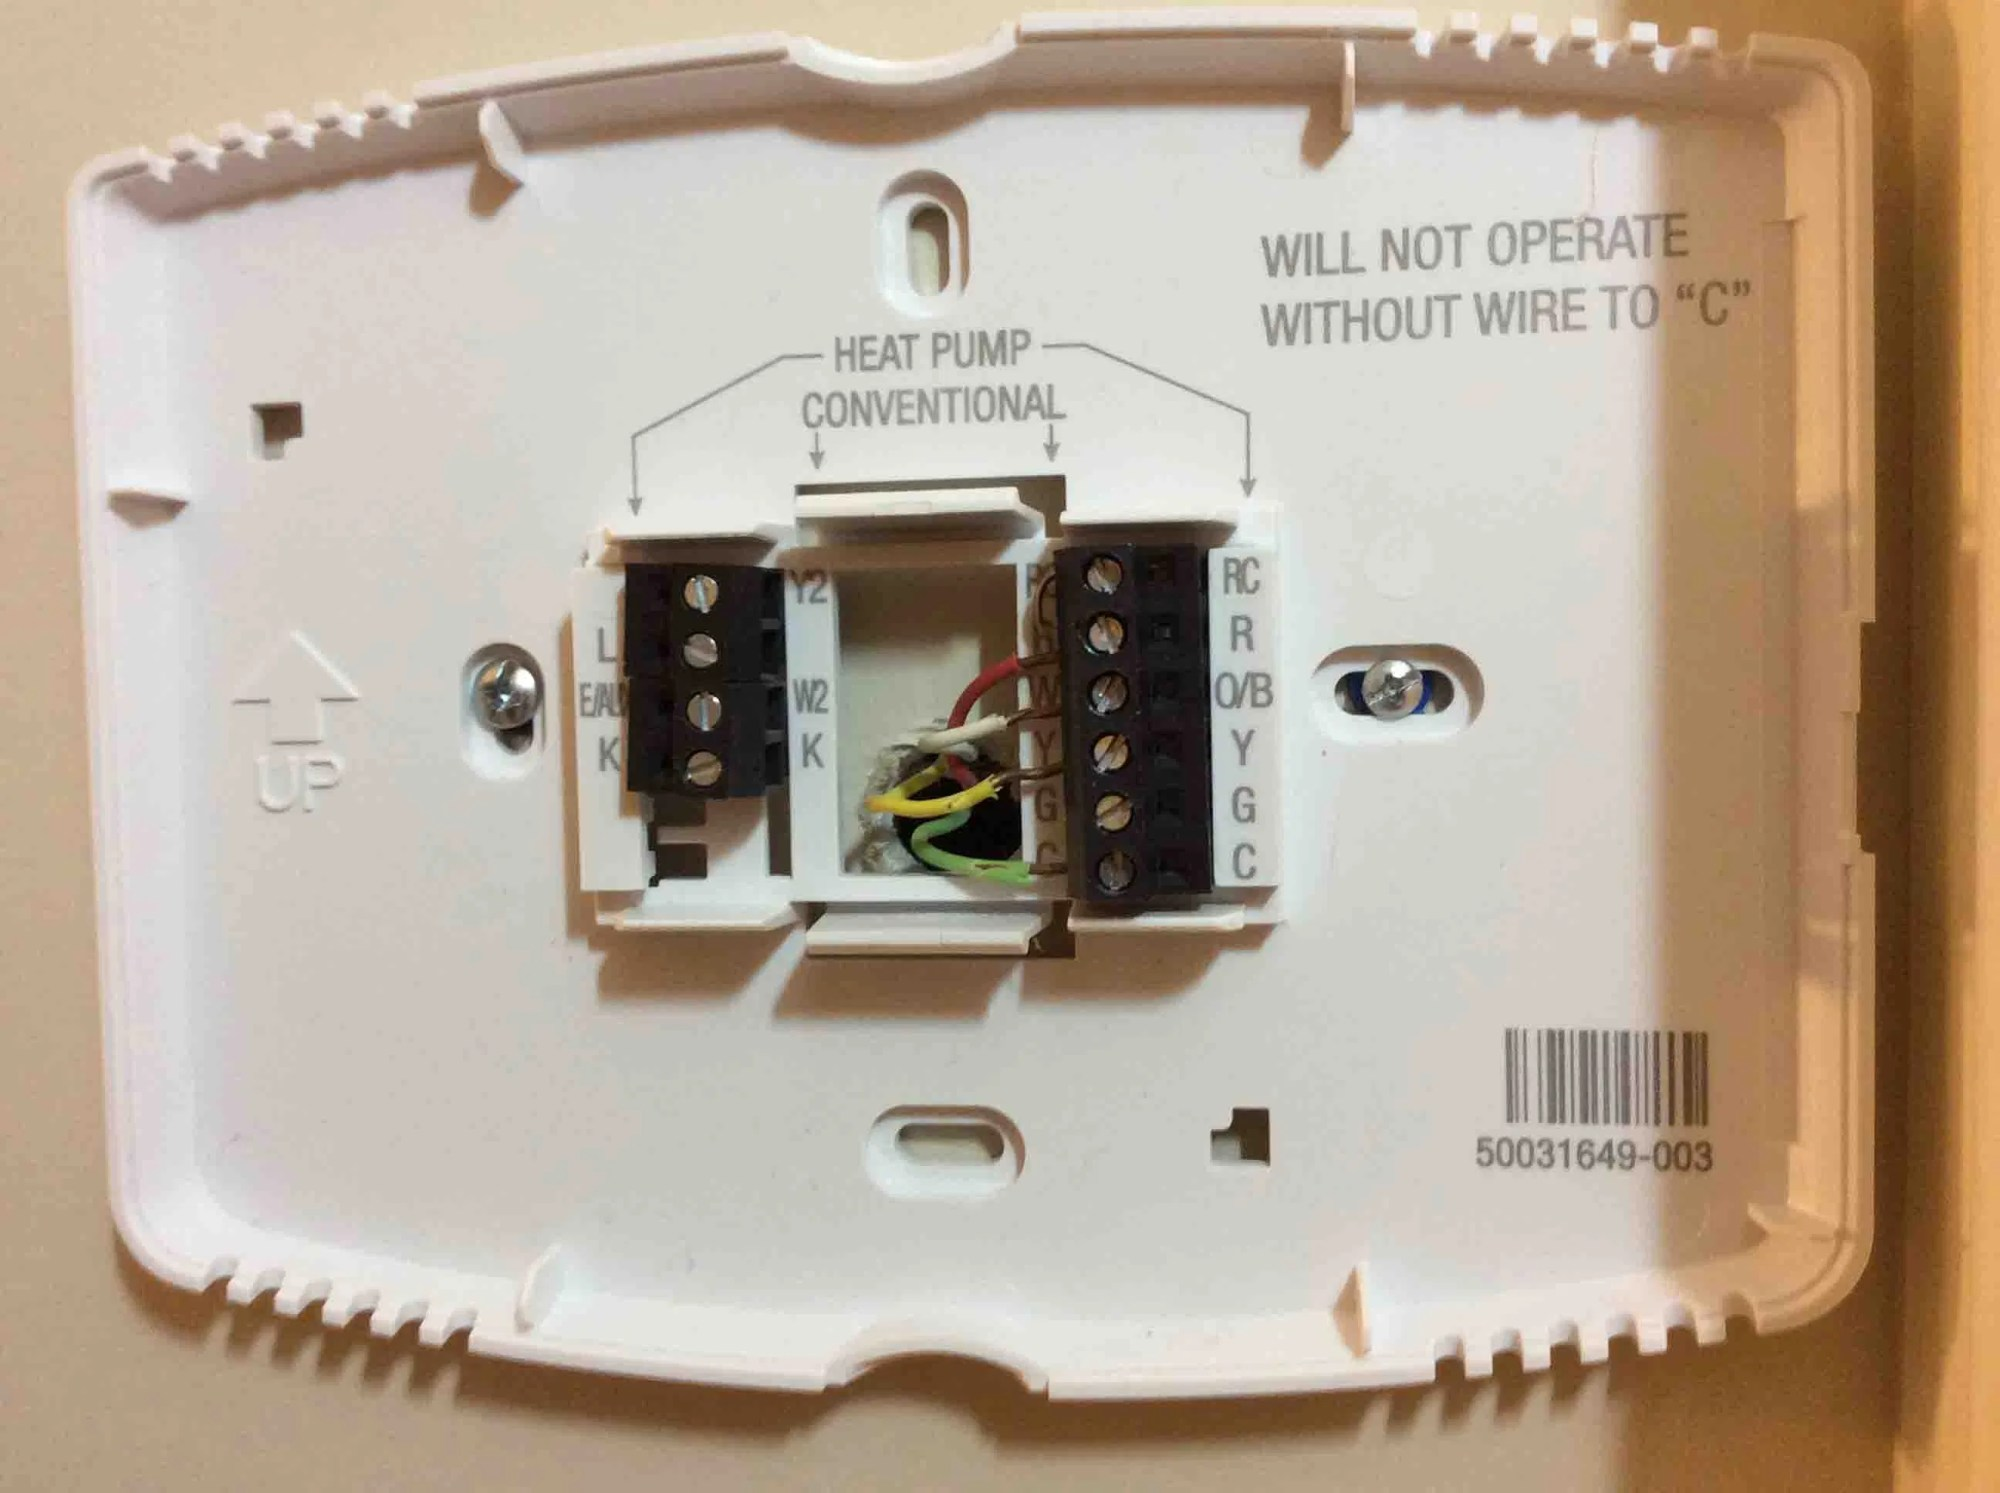 hight resolution of honeywell thermostat wiring diagram 4 wire wall plate for a 4 wire smart thermostat installation this one uses the green wire as the c wire instead of the